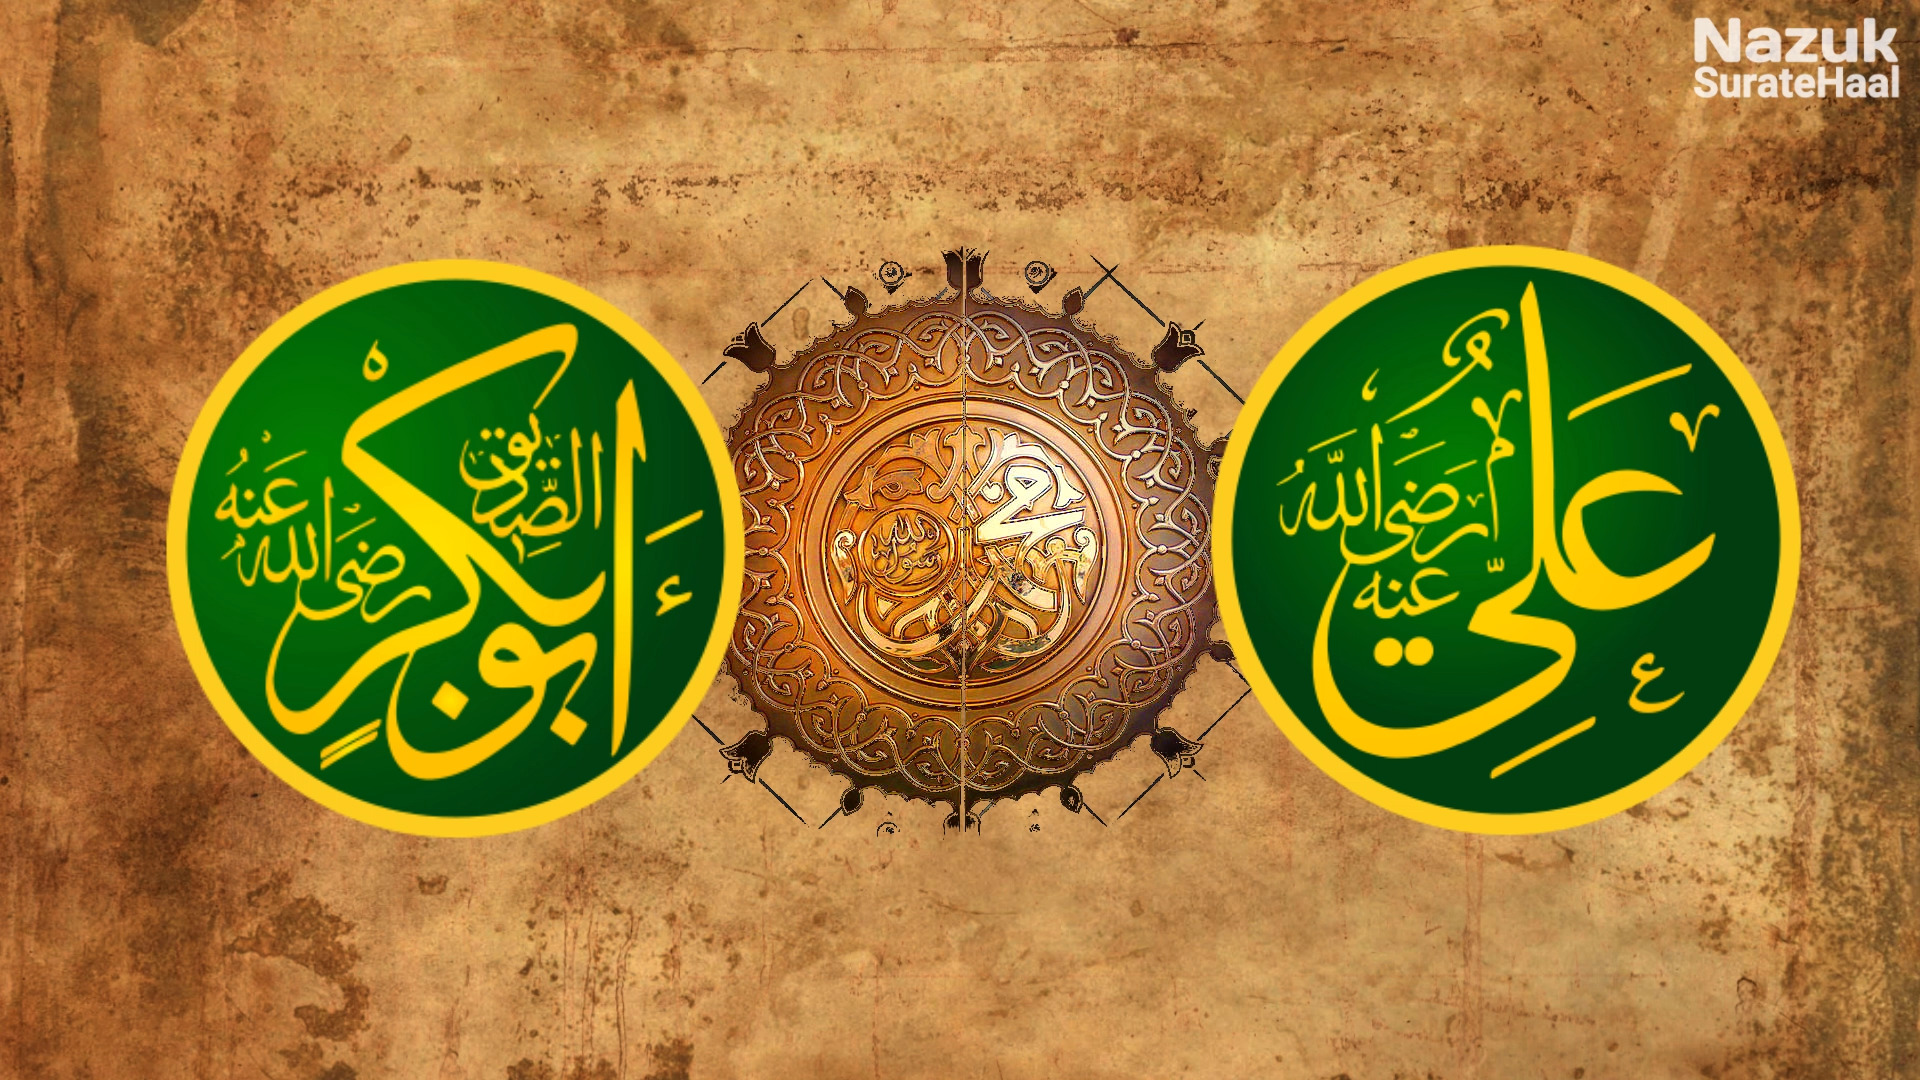 Muhammad's successor should be AbuBakr, and the Shias believed that his successor should be Ali